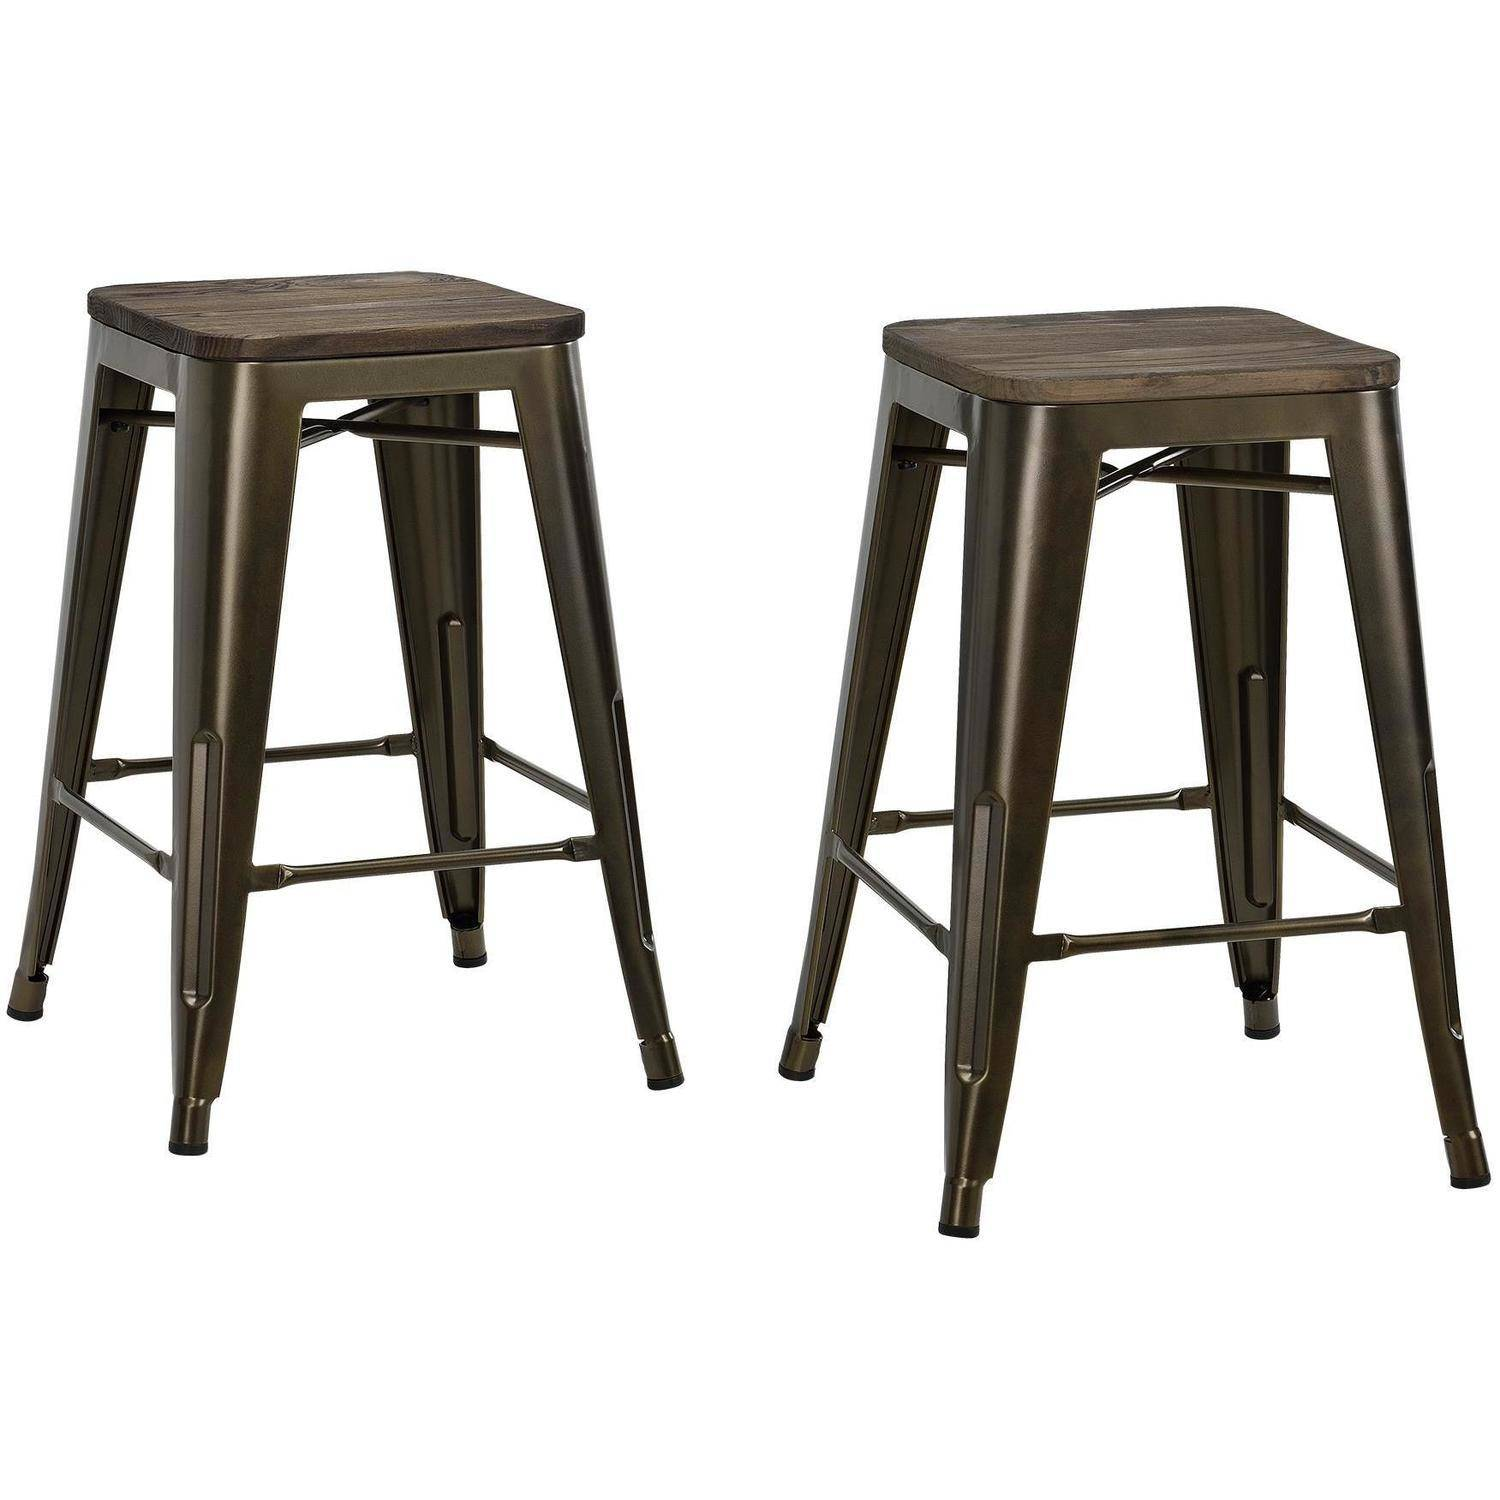 Dhp fusion 24 metal backless counter stool with wood seat set of 2 multiple colors walmart com